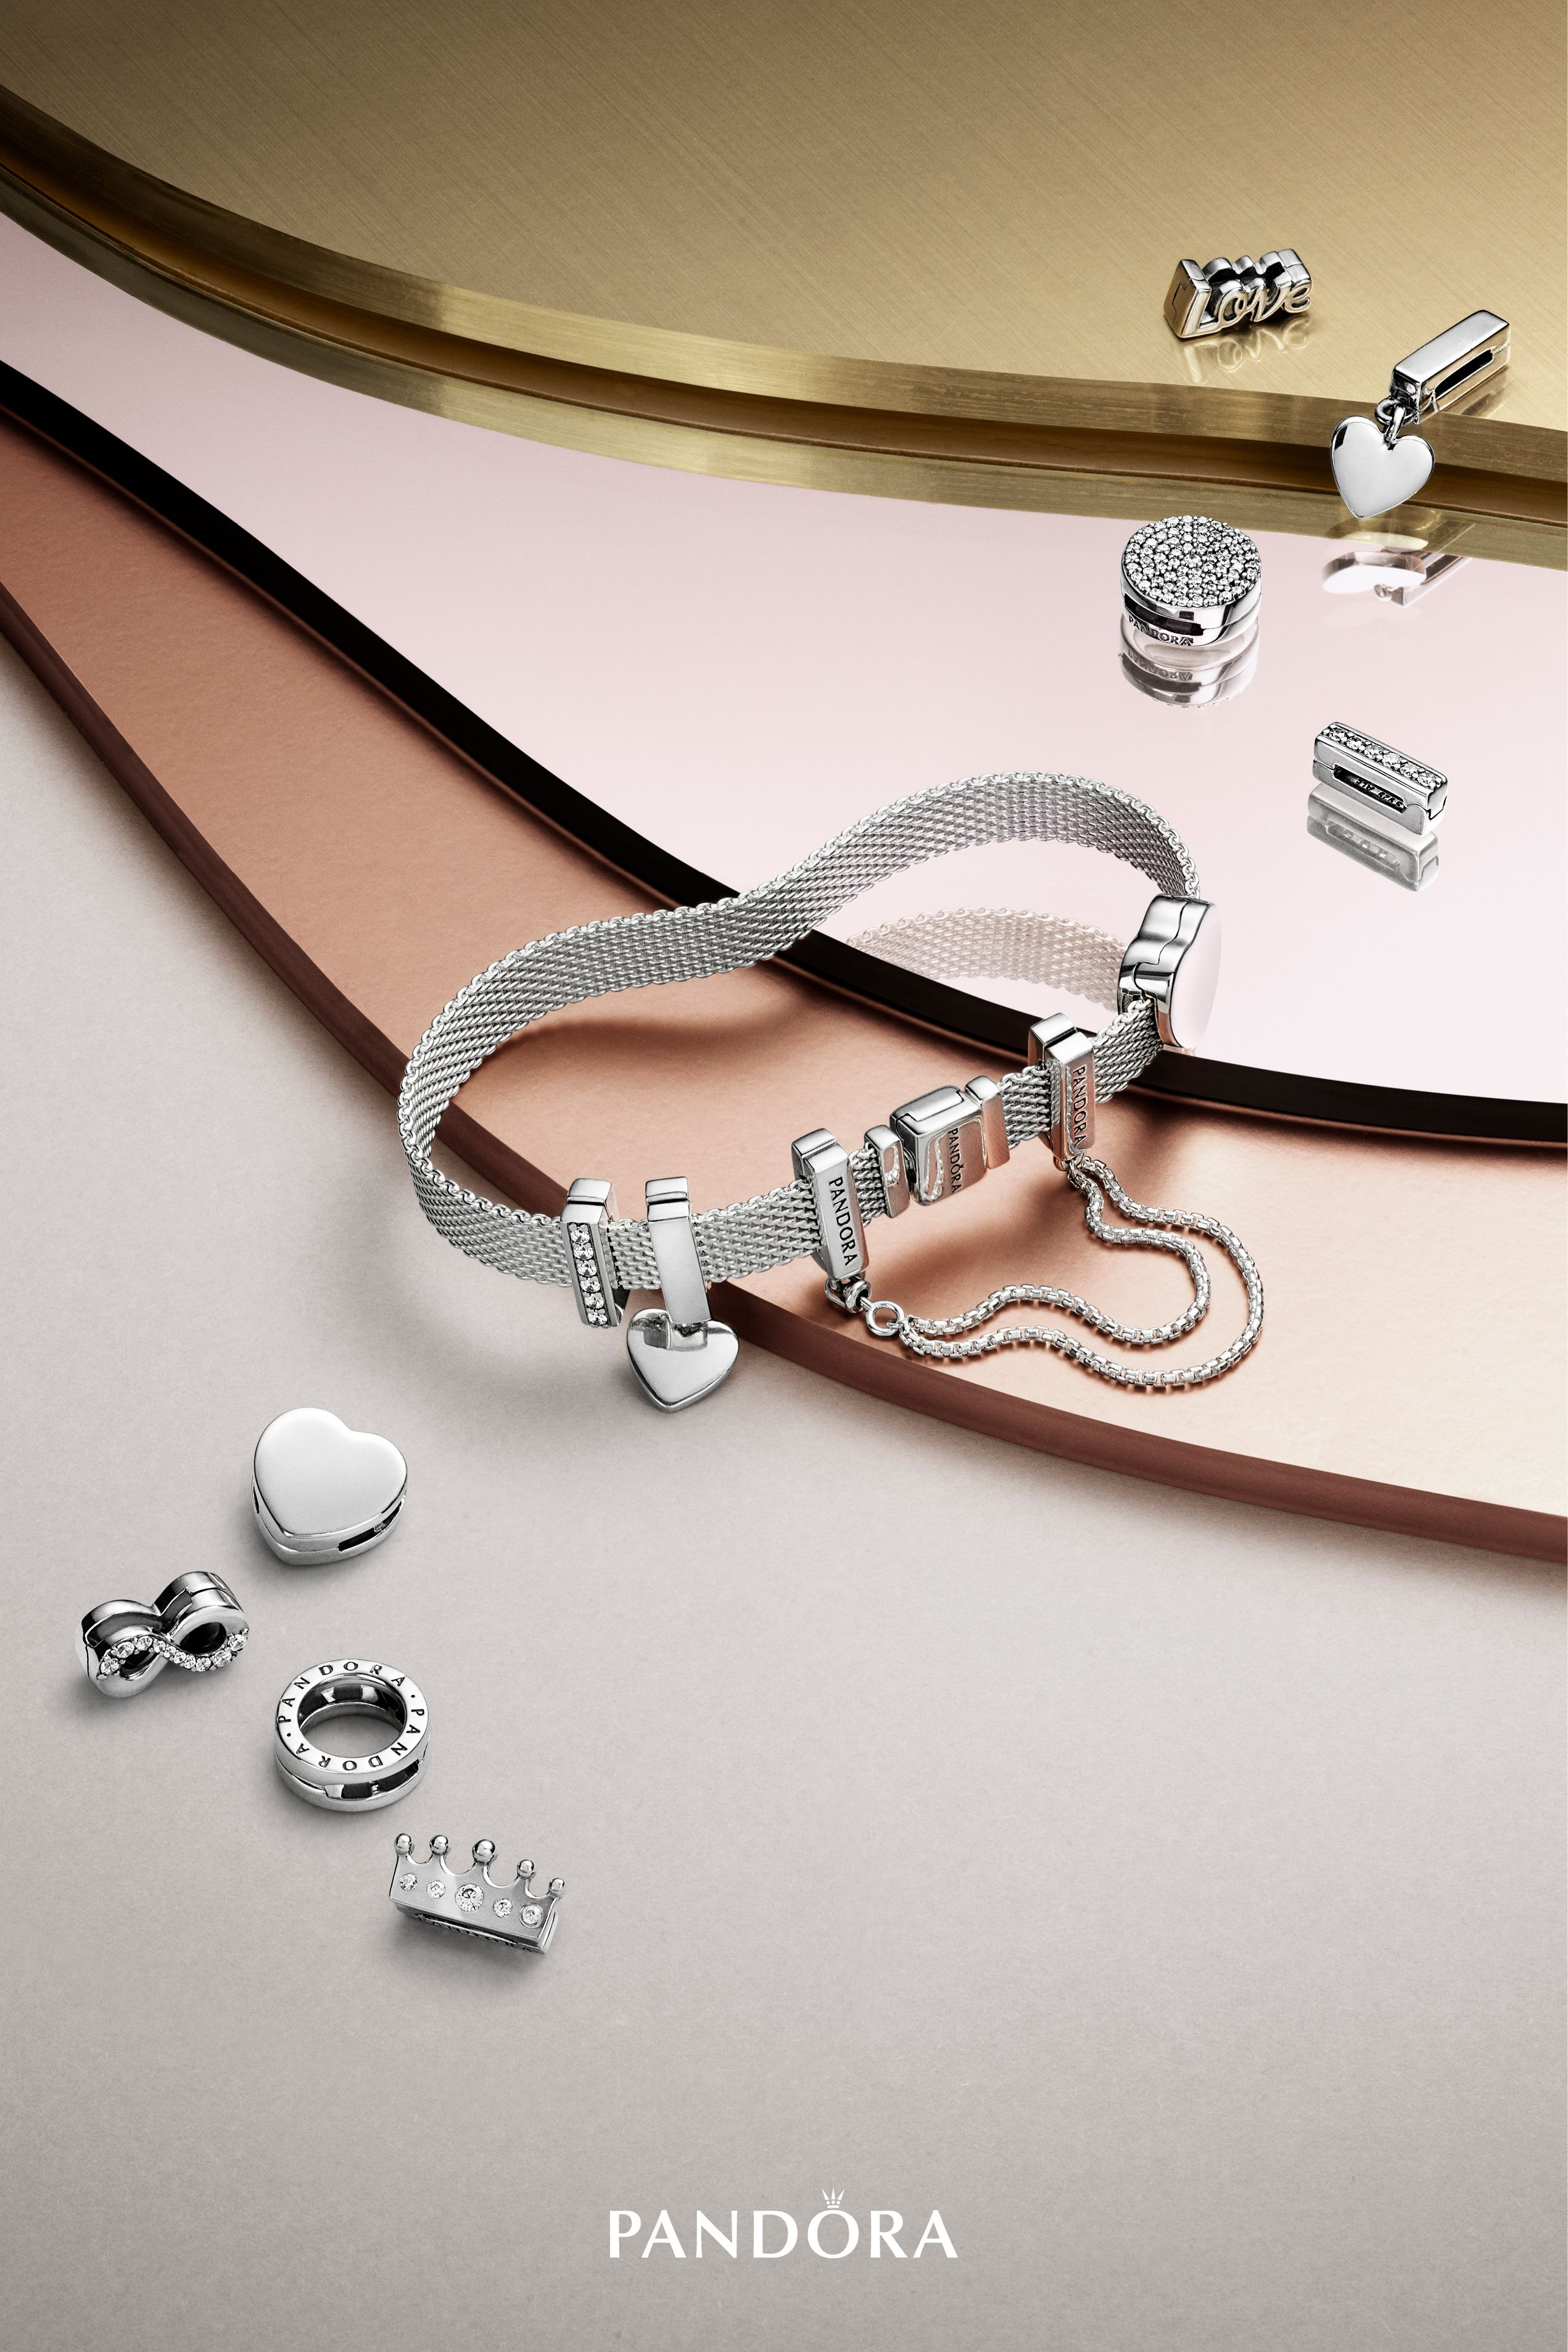 Inspiredmodern Femininity, Pandora Reflexions Marks A New Era Of Pertaining To Newest Pandora Reflexions Mesh Choker Necklaces (View 2 of 25)